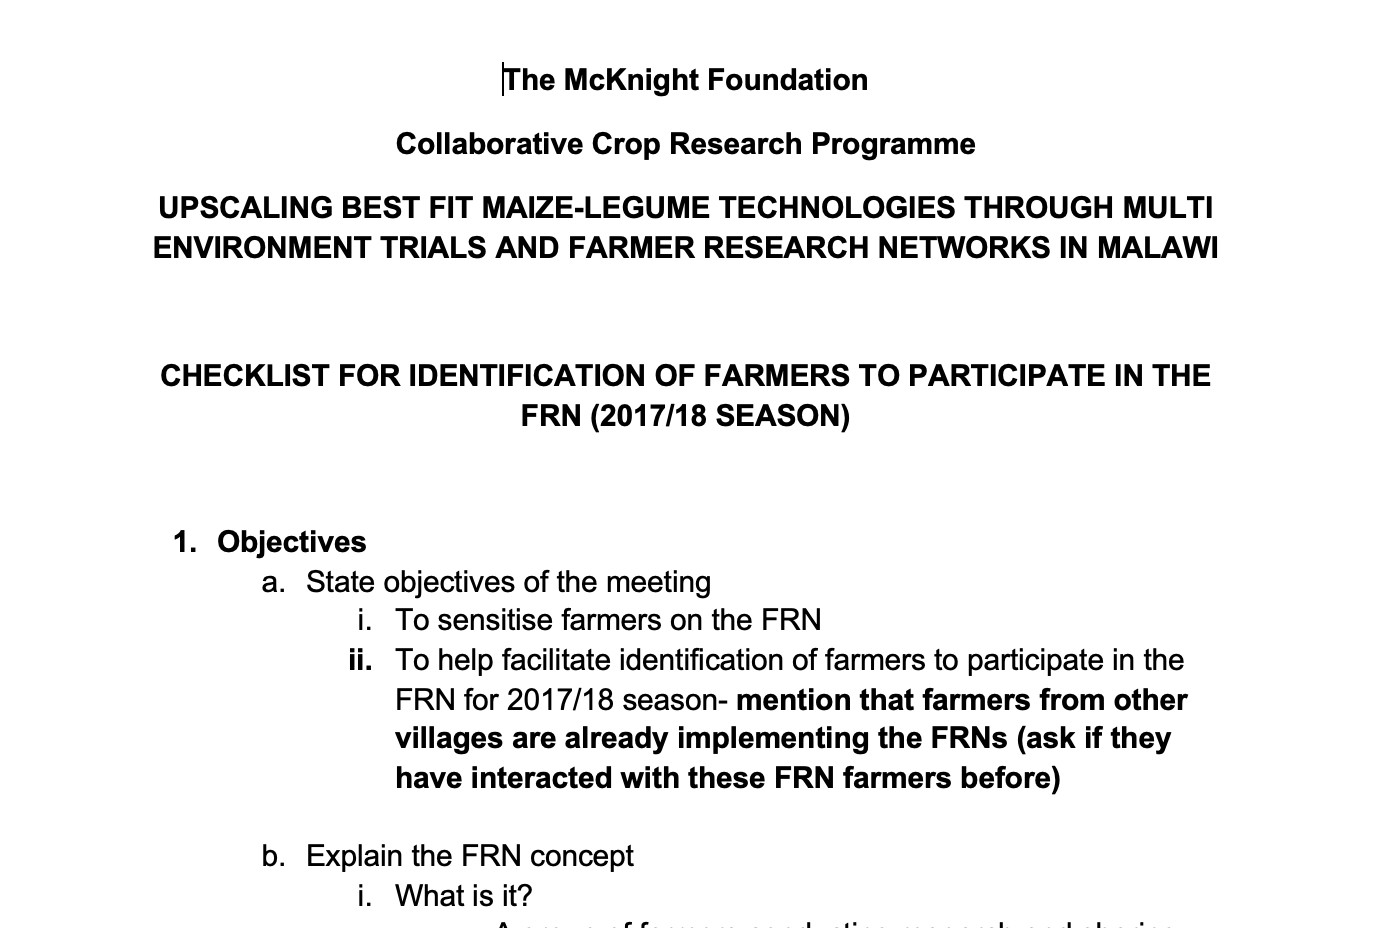 Checklist for Identification of Farmers to Participate in the FRN